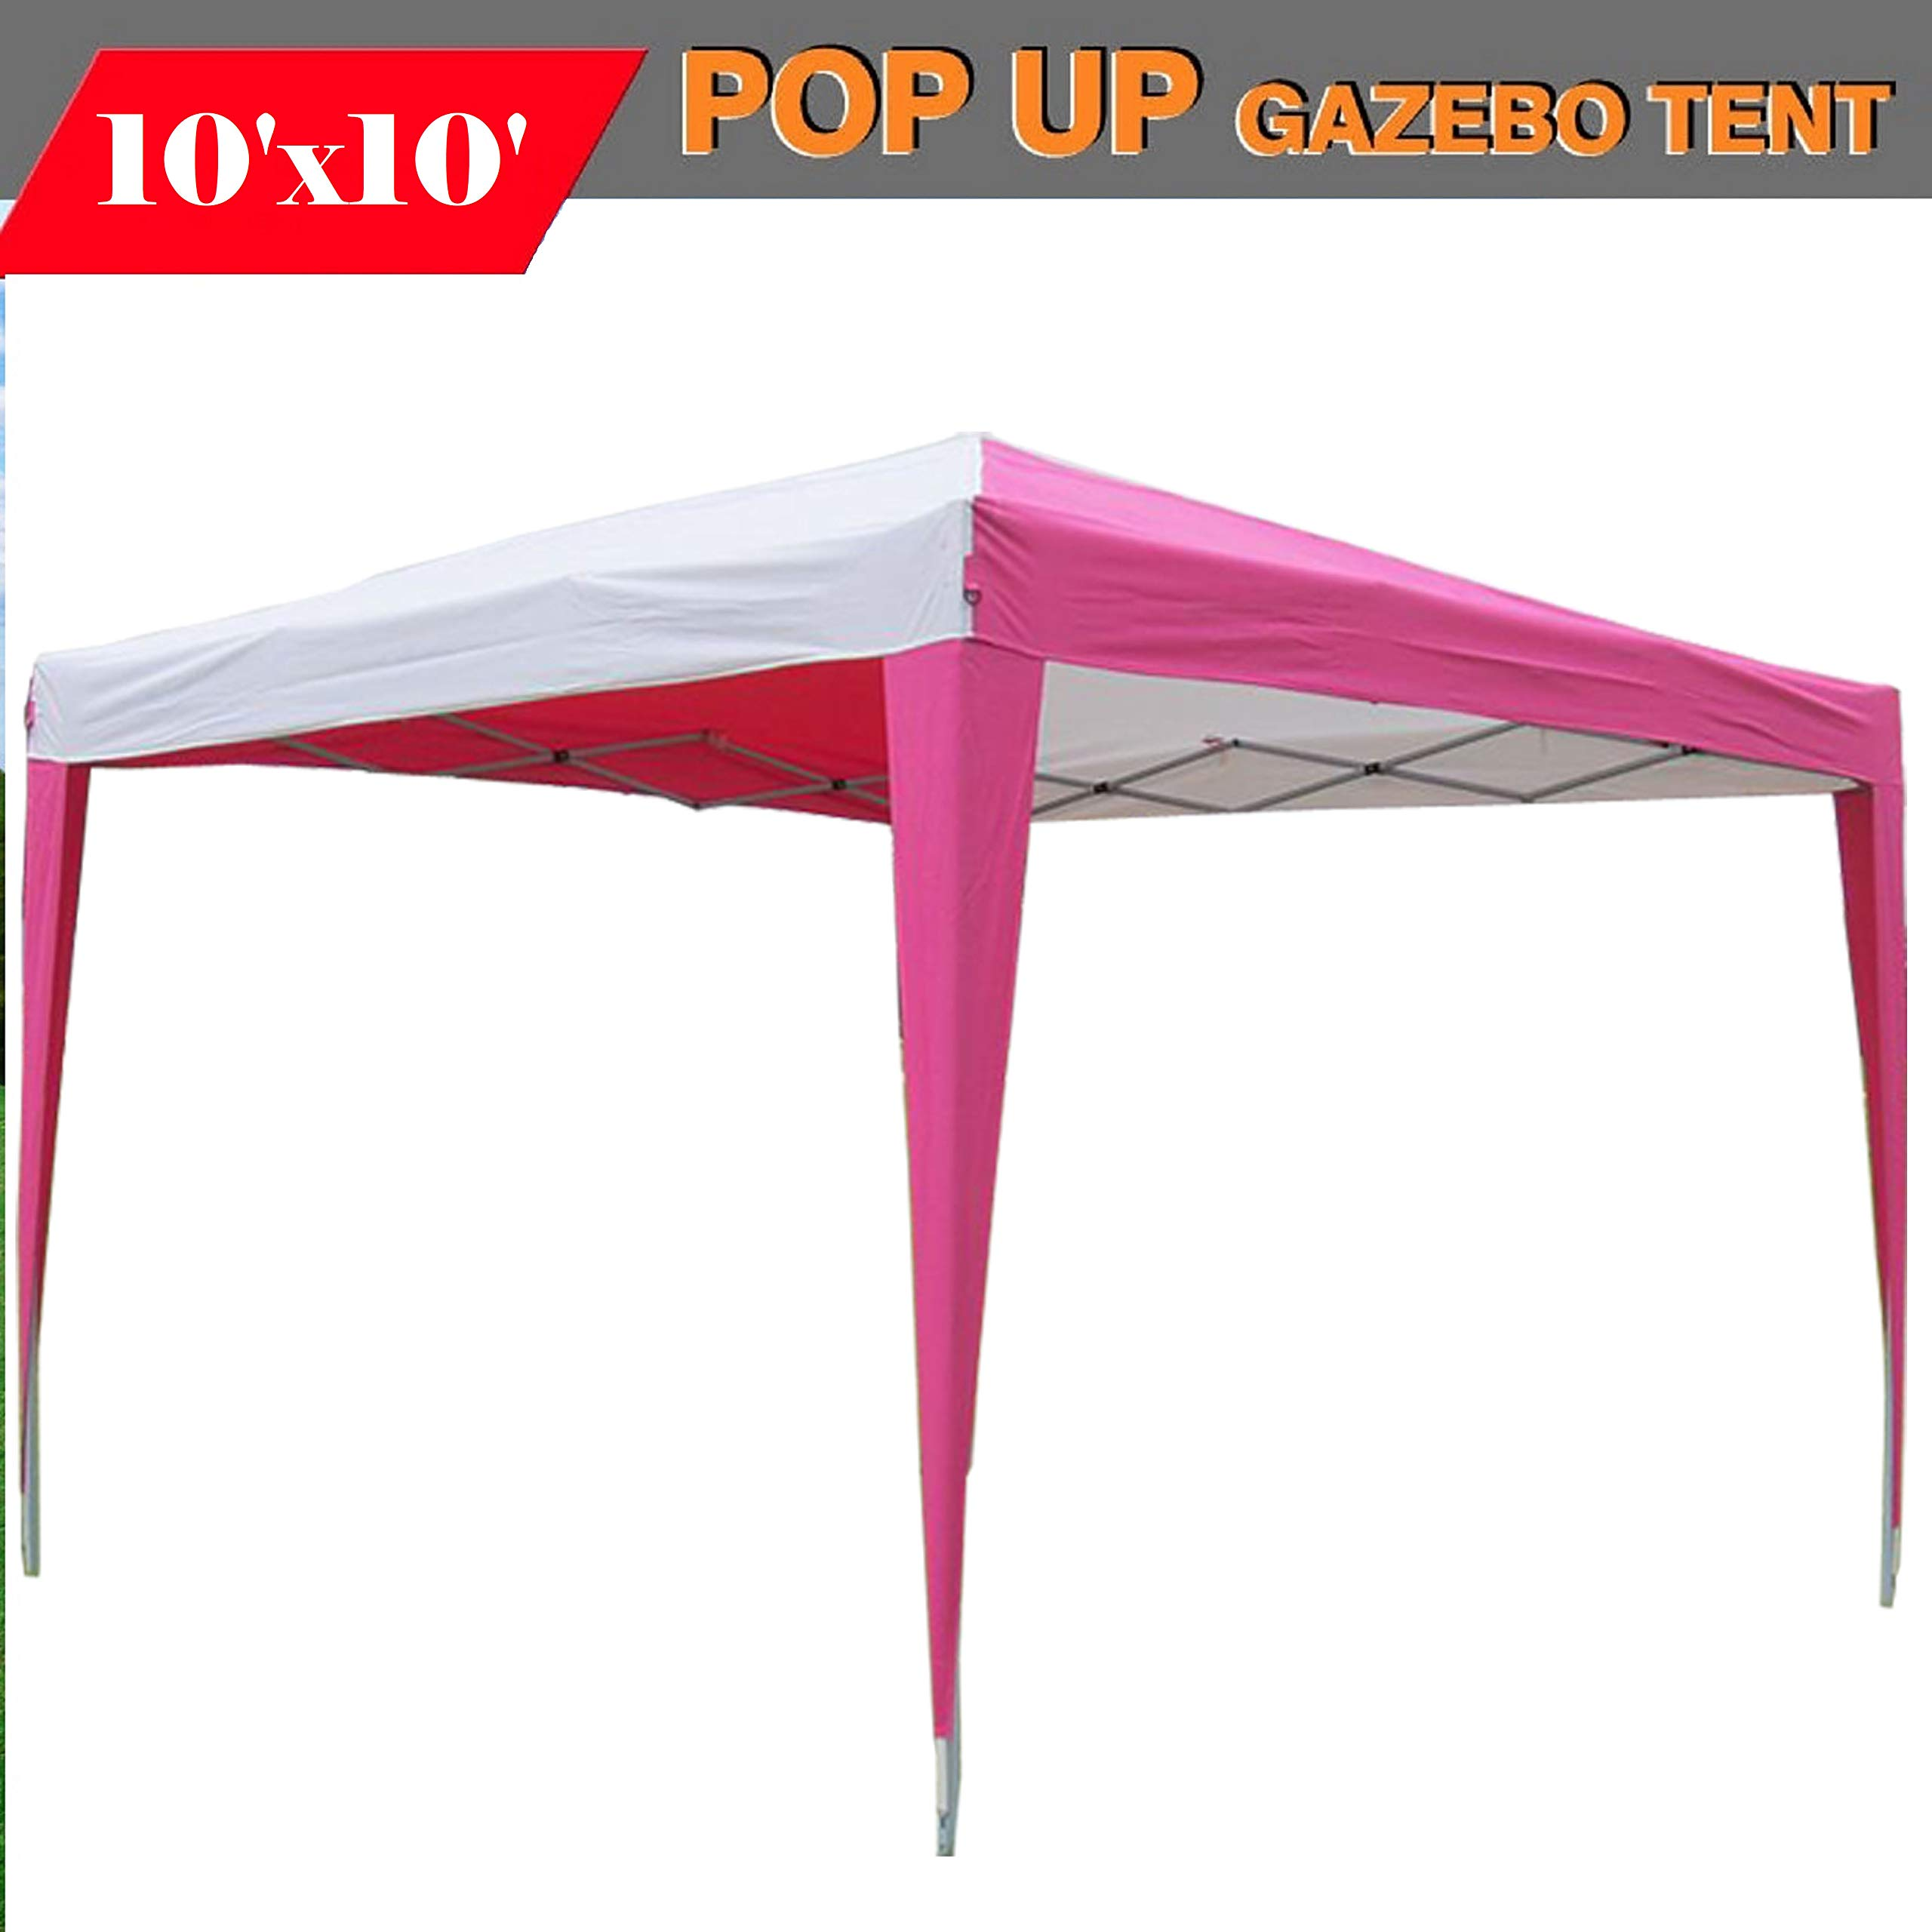 DELTA Canopies 10'x10' Pop Up Canopy Party Tent Instant Gazebo EZ CS N - Pink/White